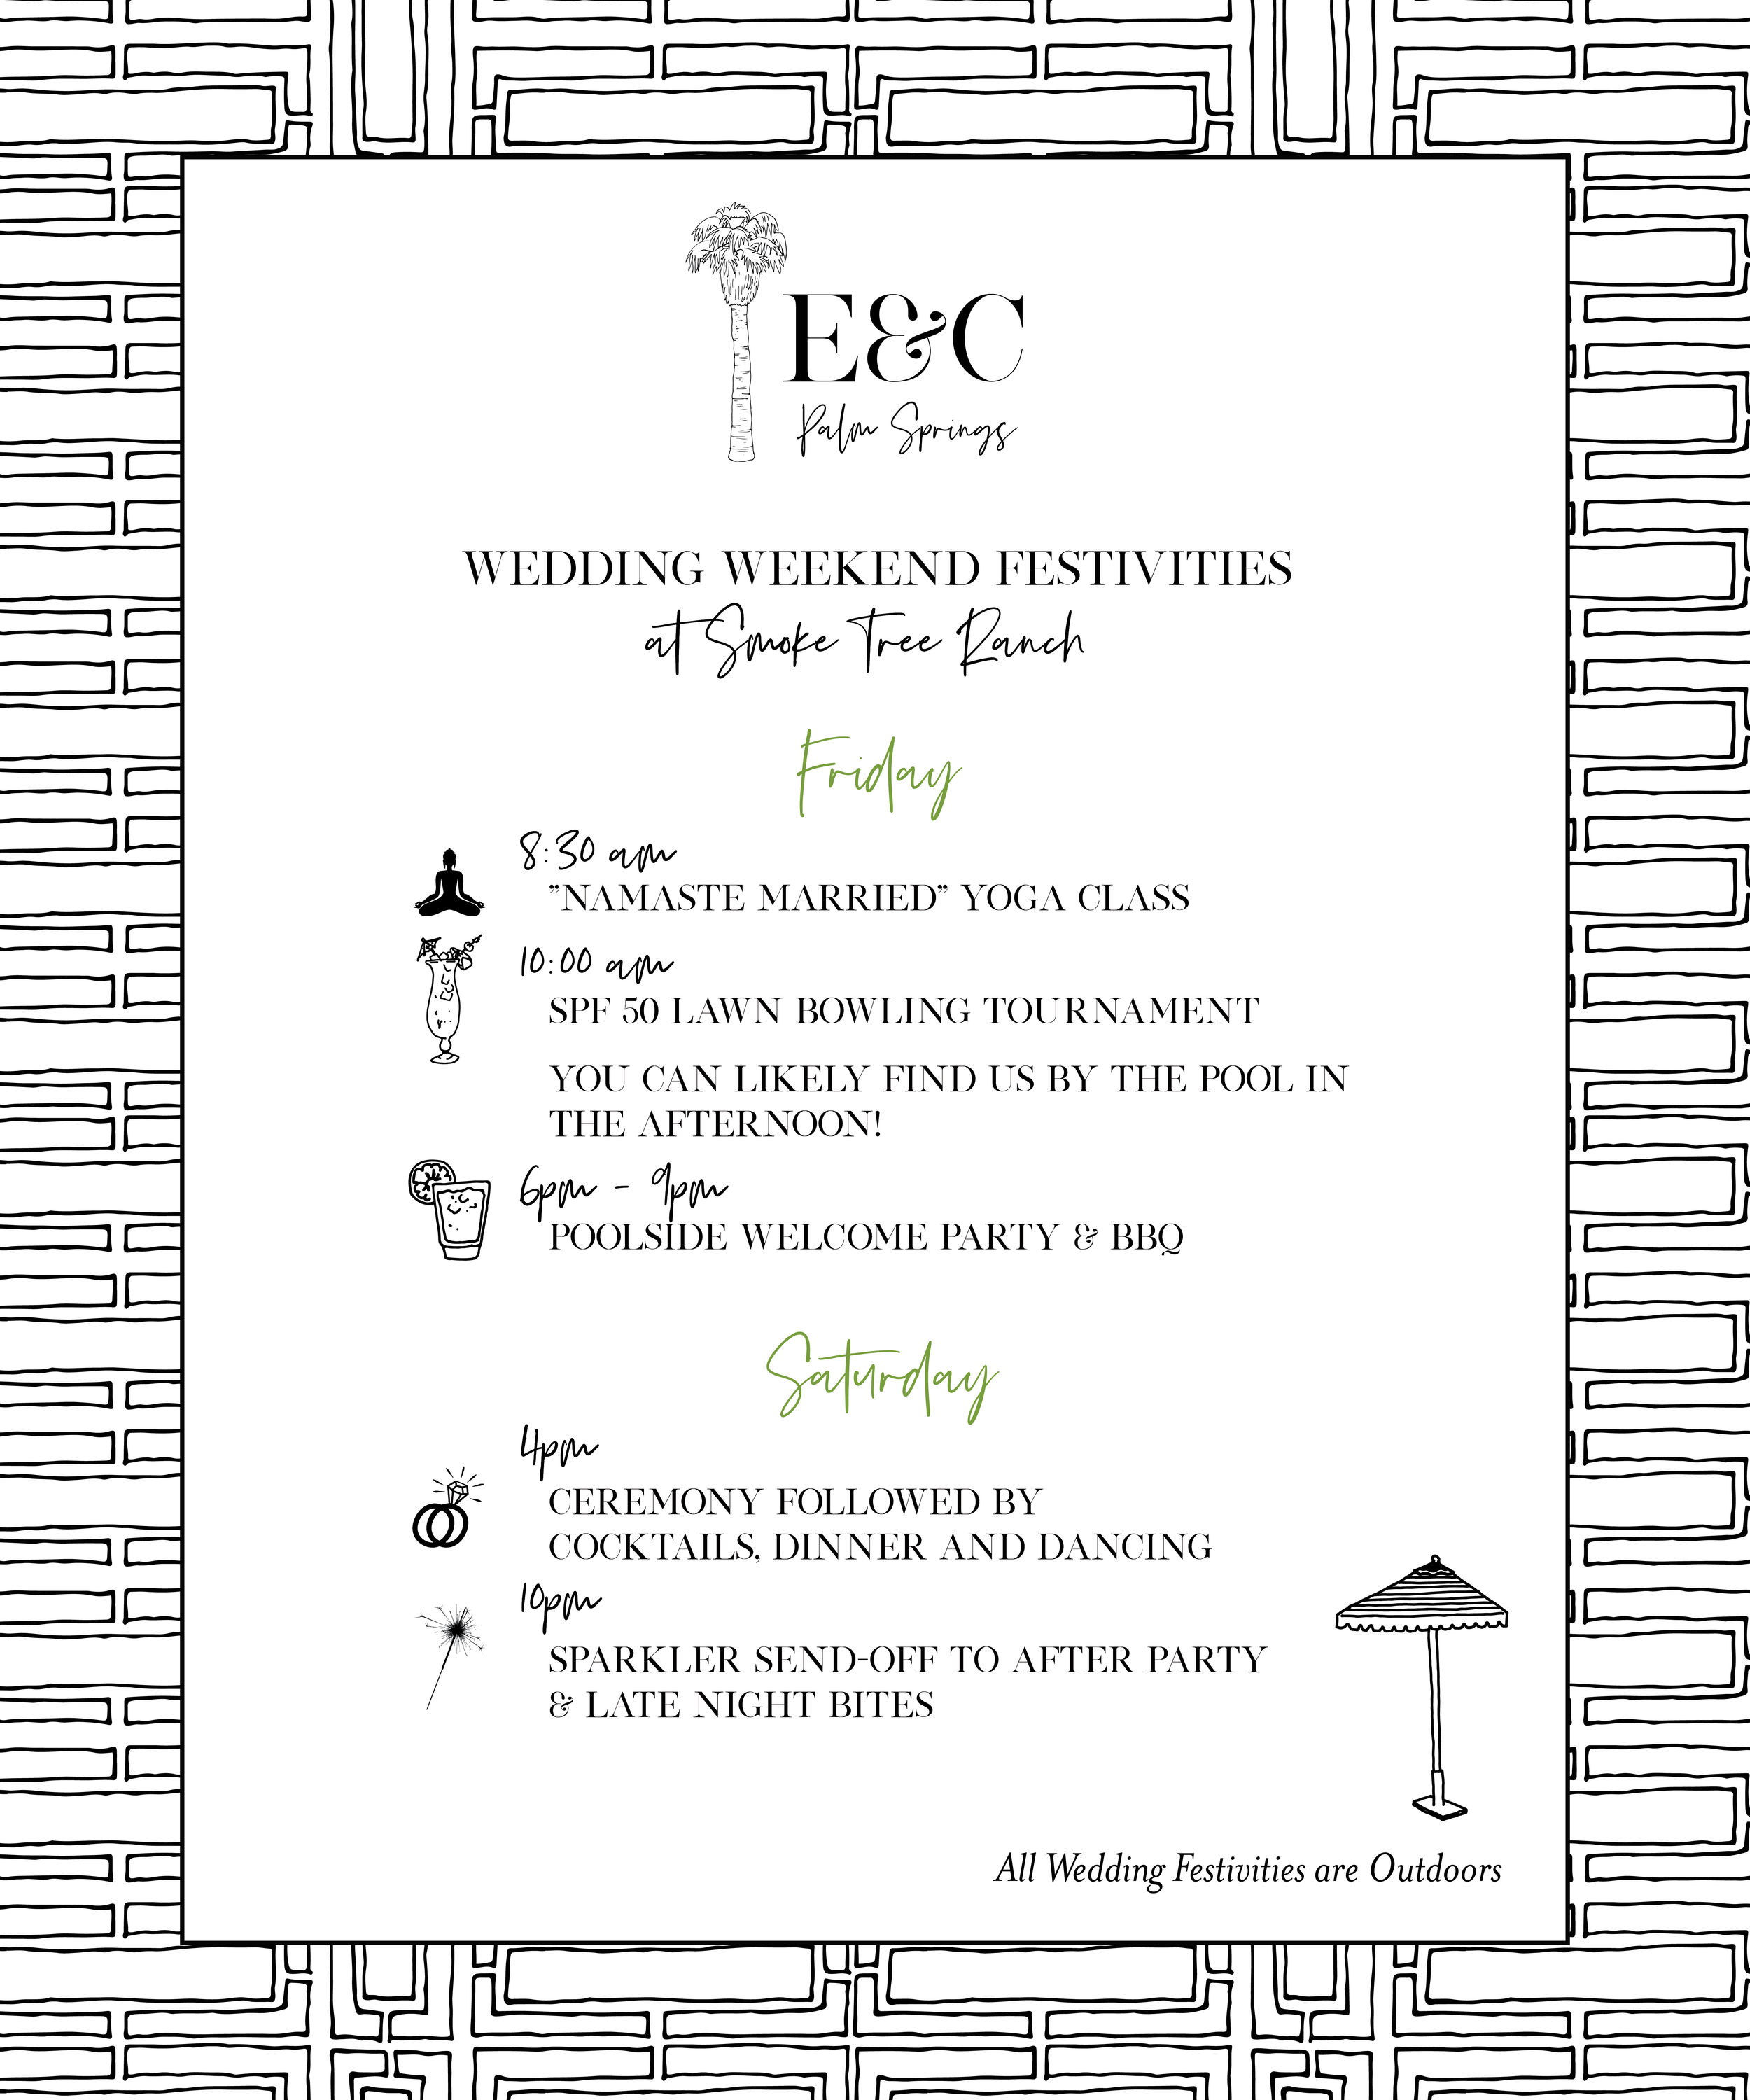 Palm Springs Erin Large Itinerary 20x24 Canvas-01.png